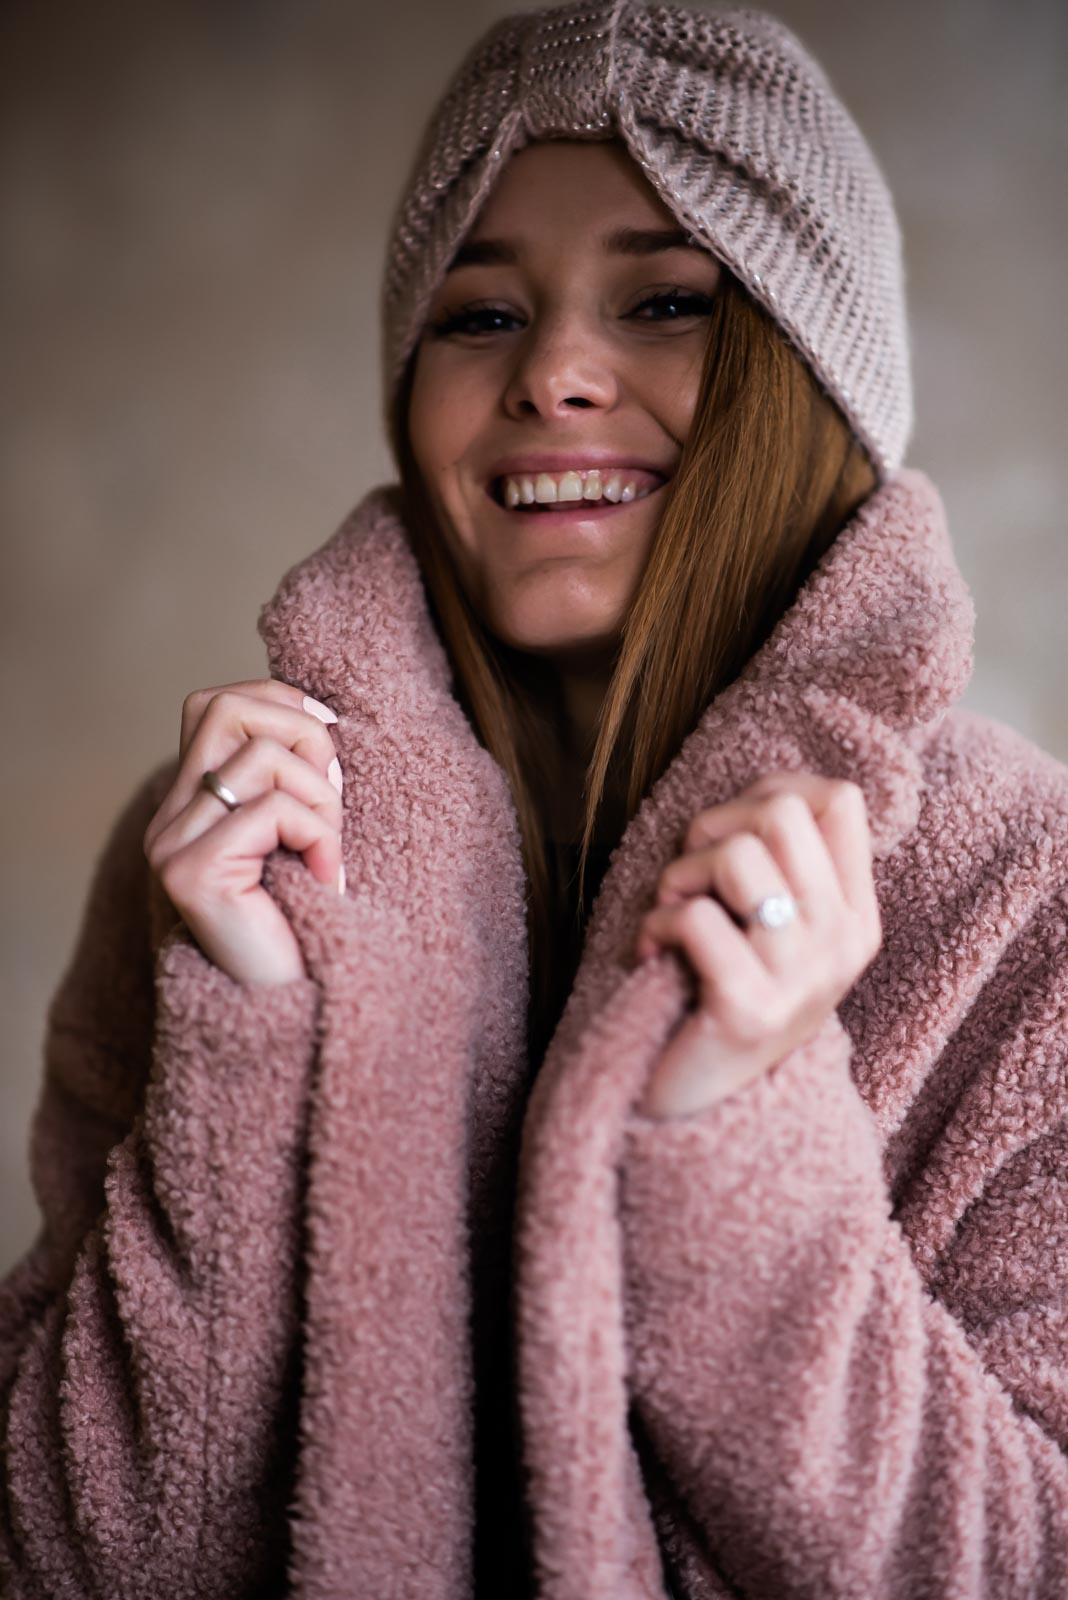 smiling fashion blogger wearing pink turban and touching teddy coat